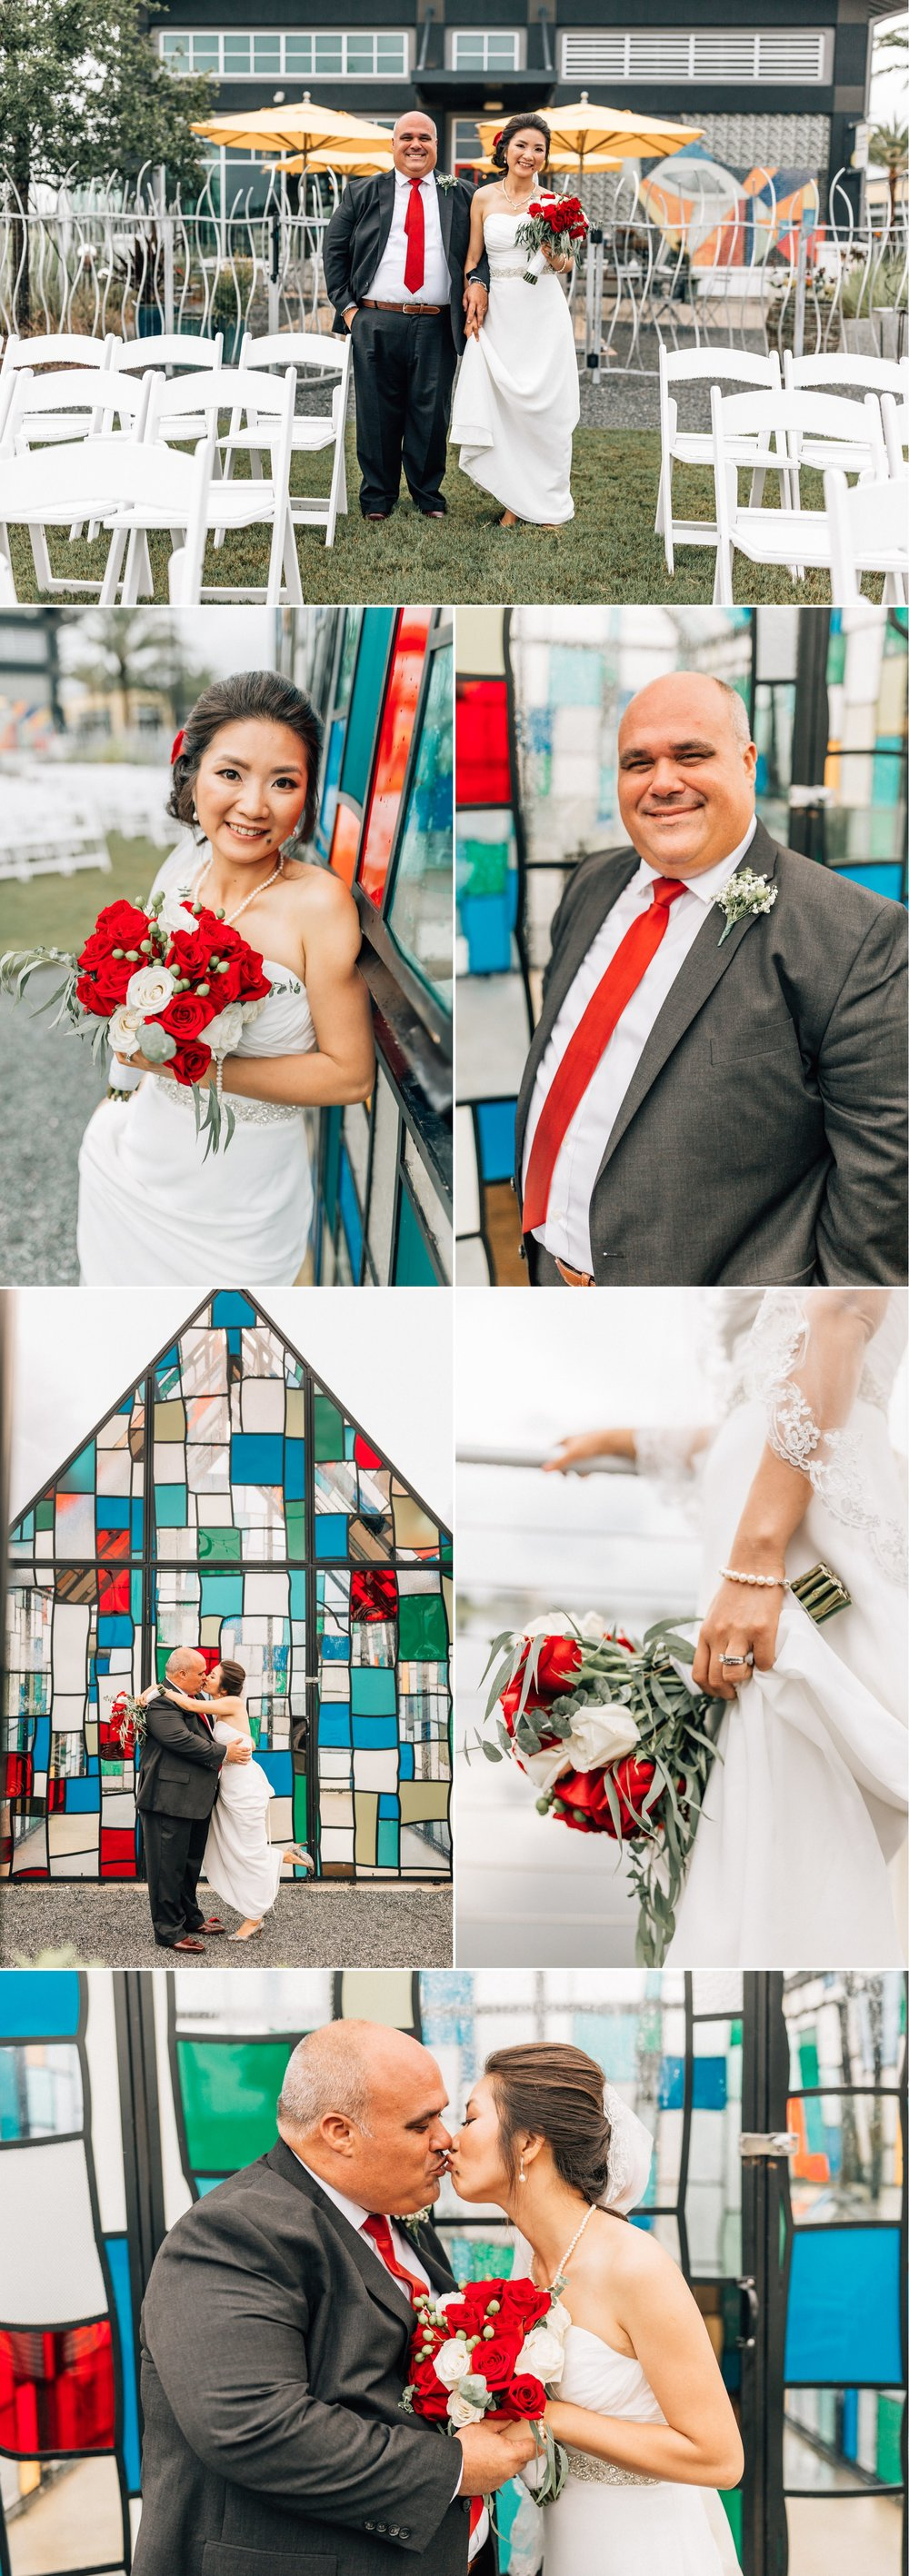 Lakehouse Lake Nona Wedding- Modern Colorful Red Multicultural- Susan + Manolo 31.jpg